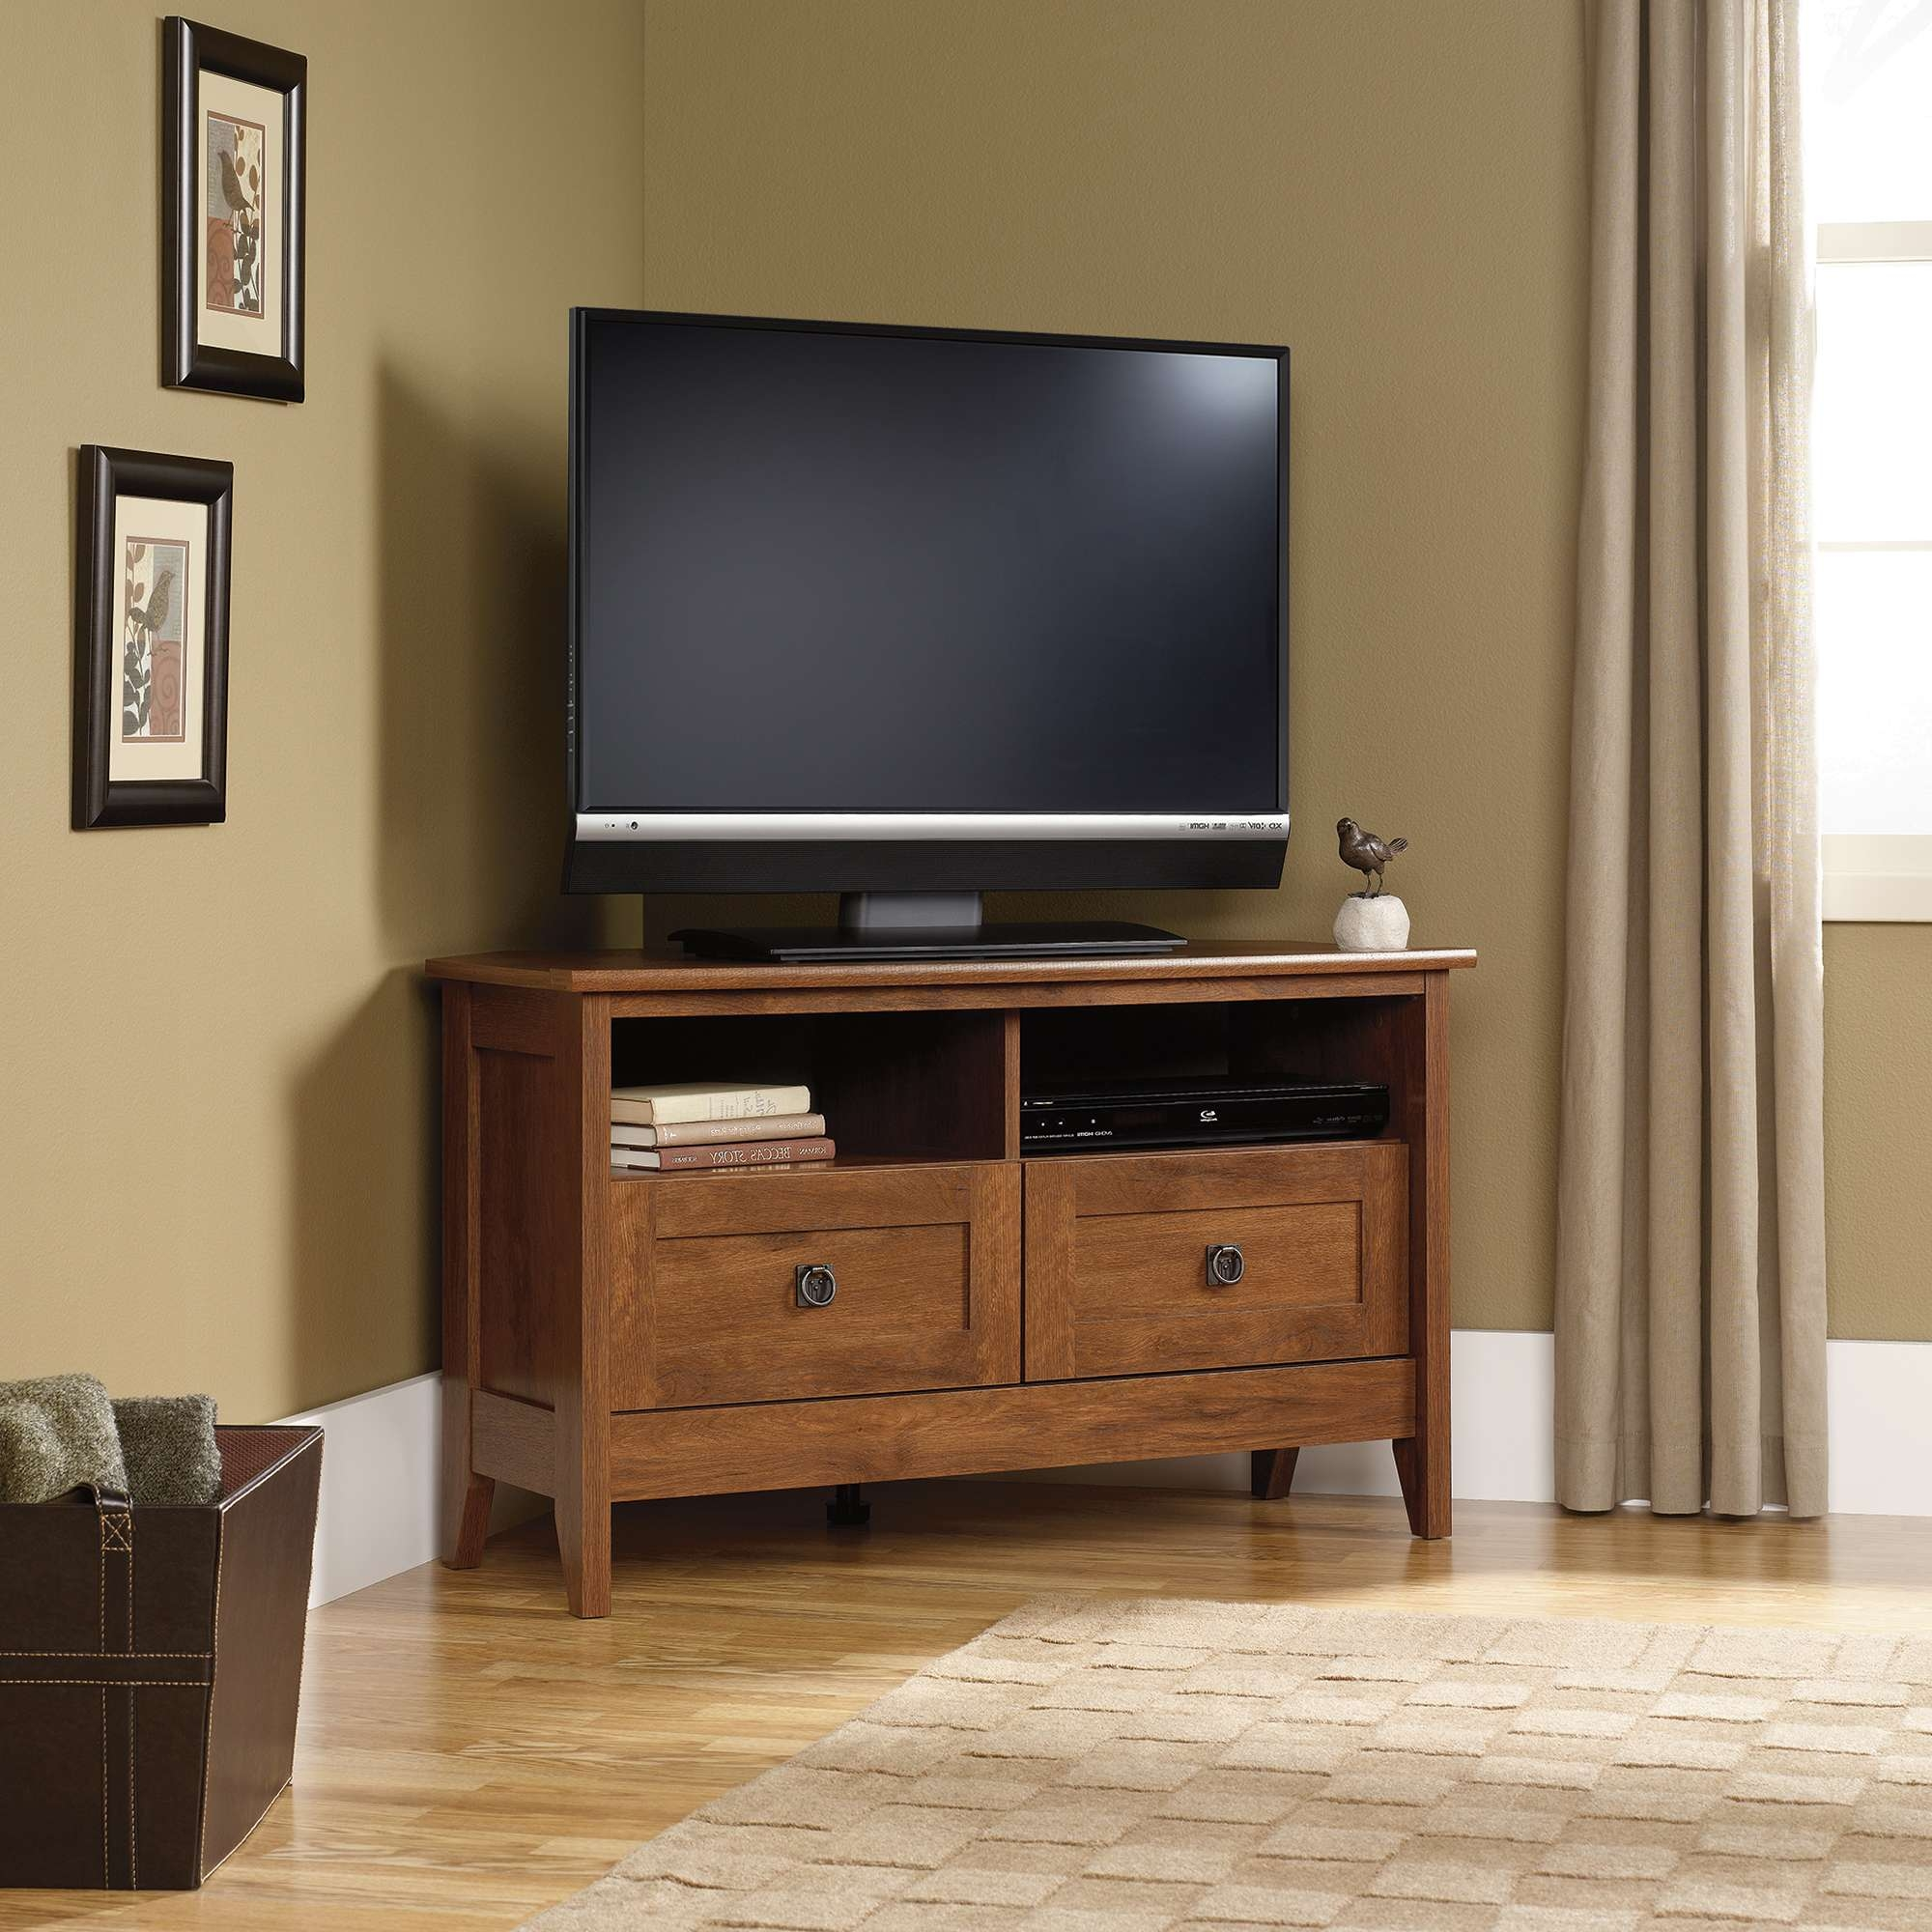 Sauder Select | Corner Tv Stand | 410627 | Sauder Inside Dark Wood Corner Tv Cabinets (View 15 of 20)